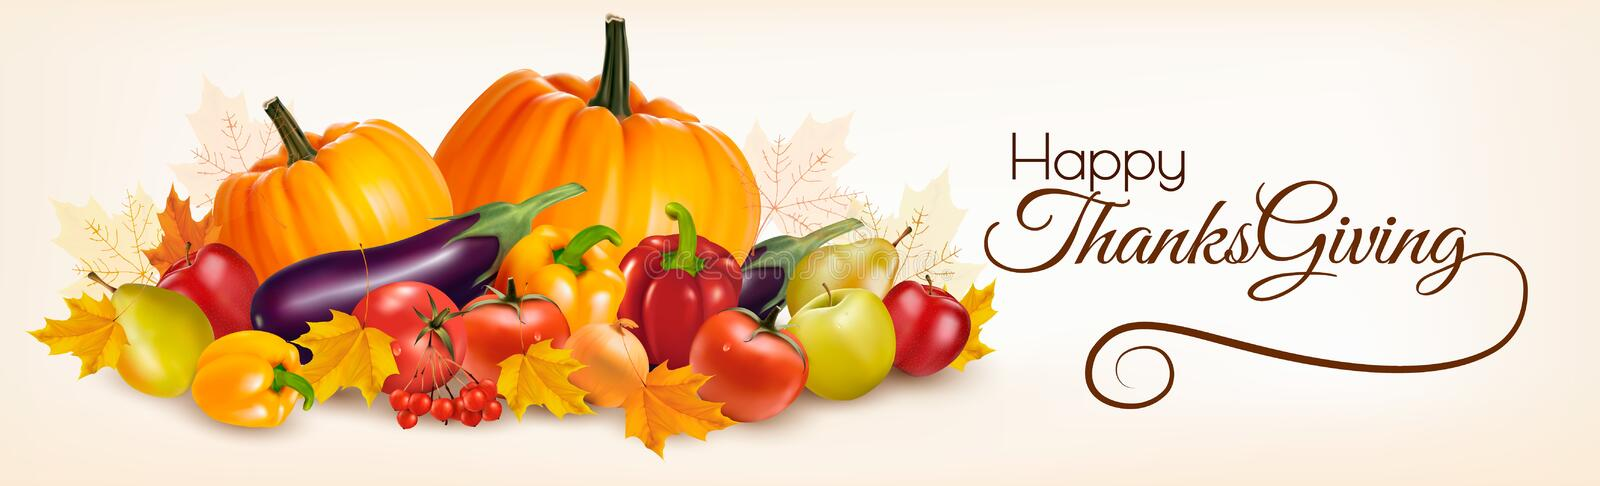 Happy Thanksgiving banner with autumn vegetables. Vector